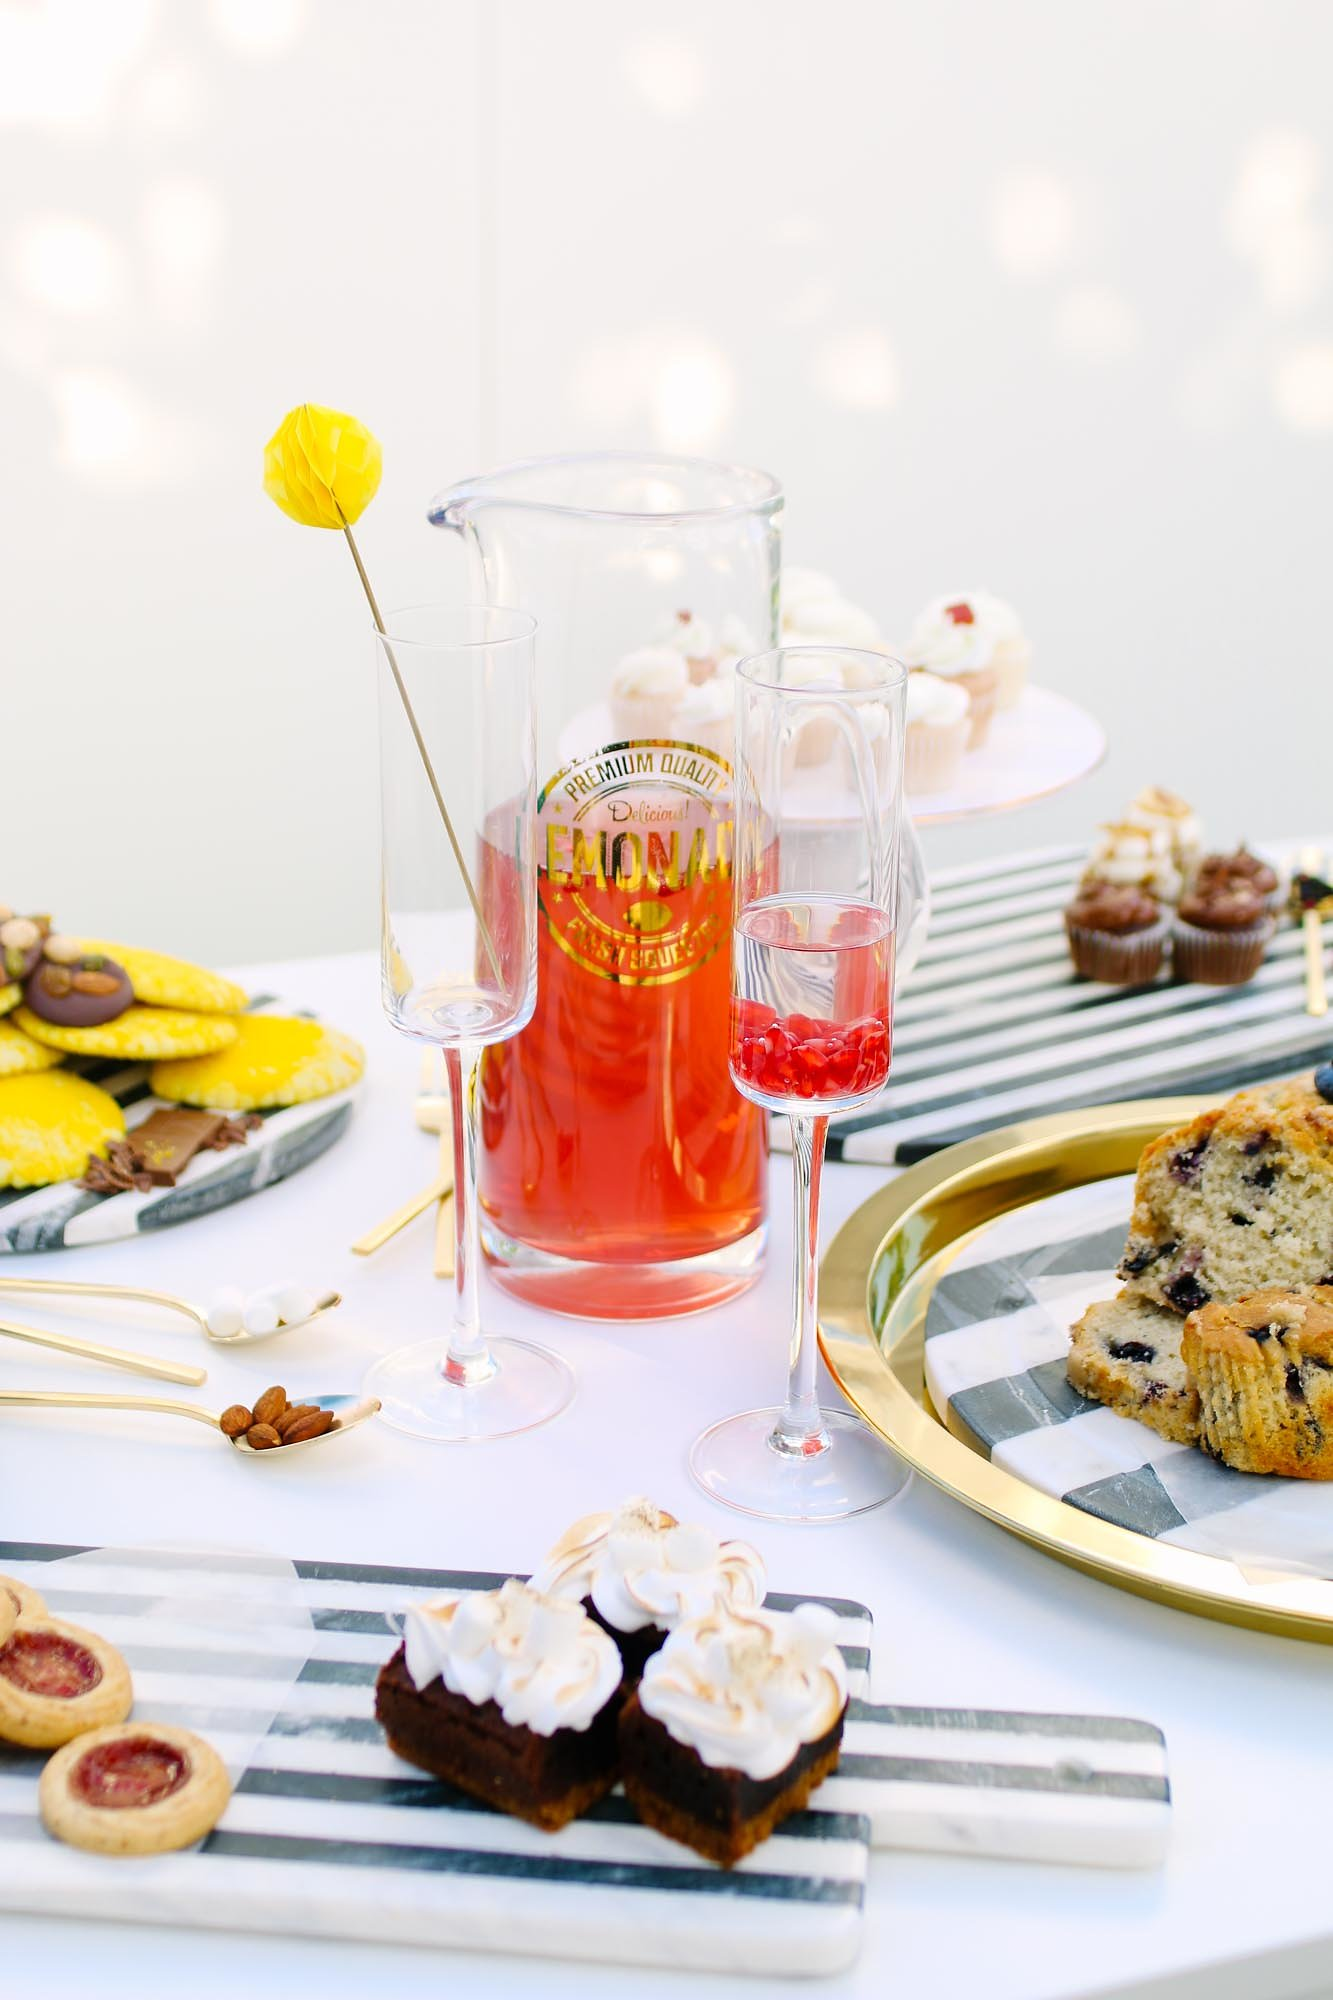 Beverage and Pitcher from Mod Color Party Styled by Tinseldot | Black Twine